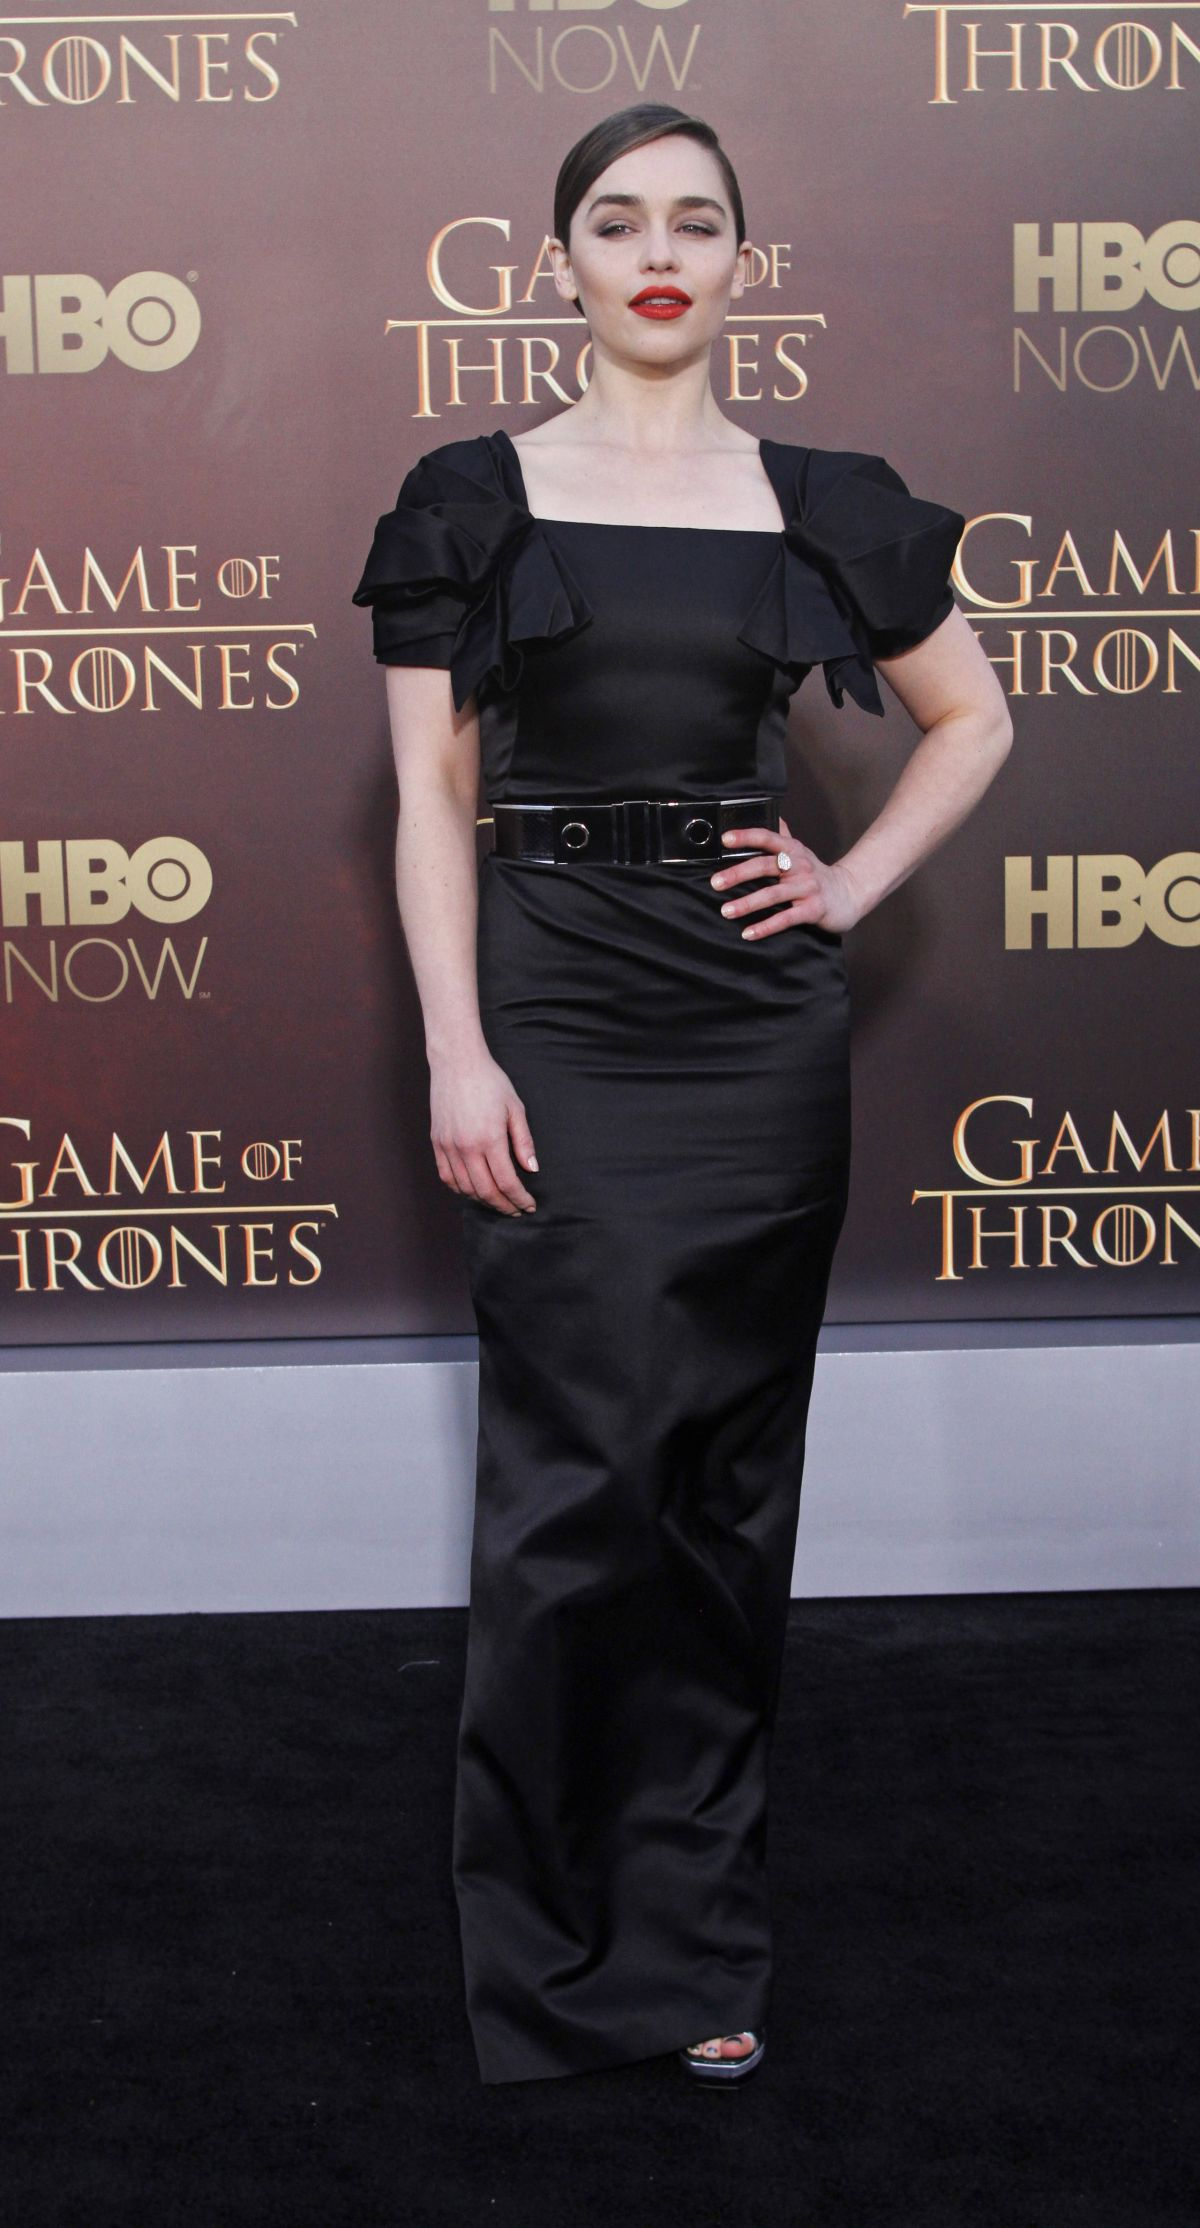 Game Of Thrones': Season 5 Premiere Date Announced   Access ...